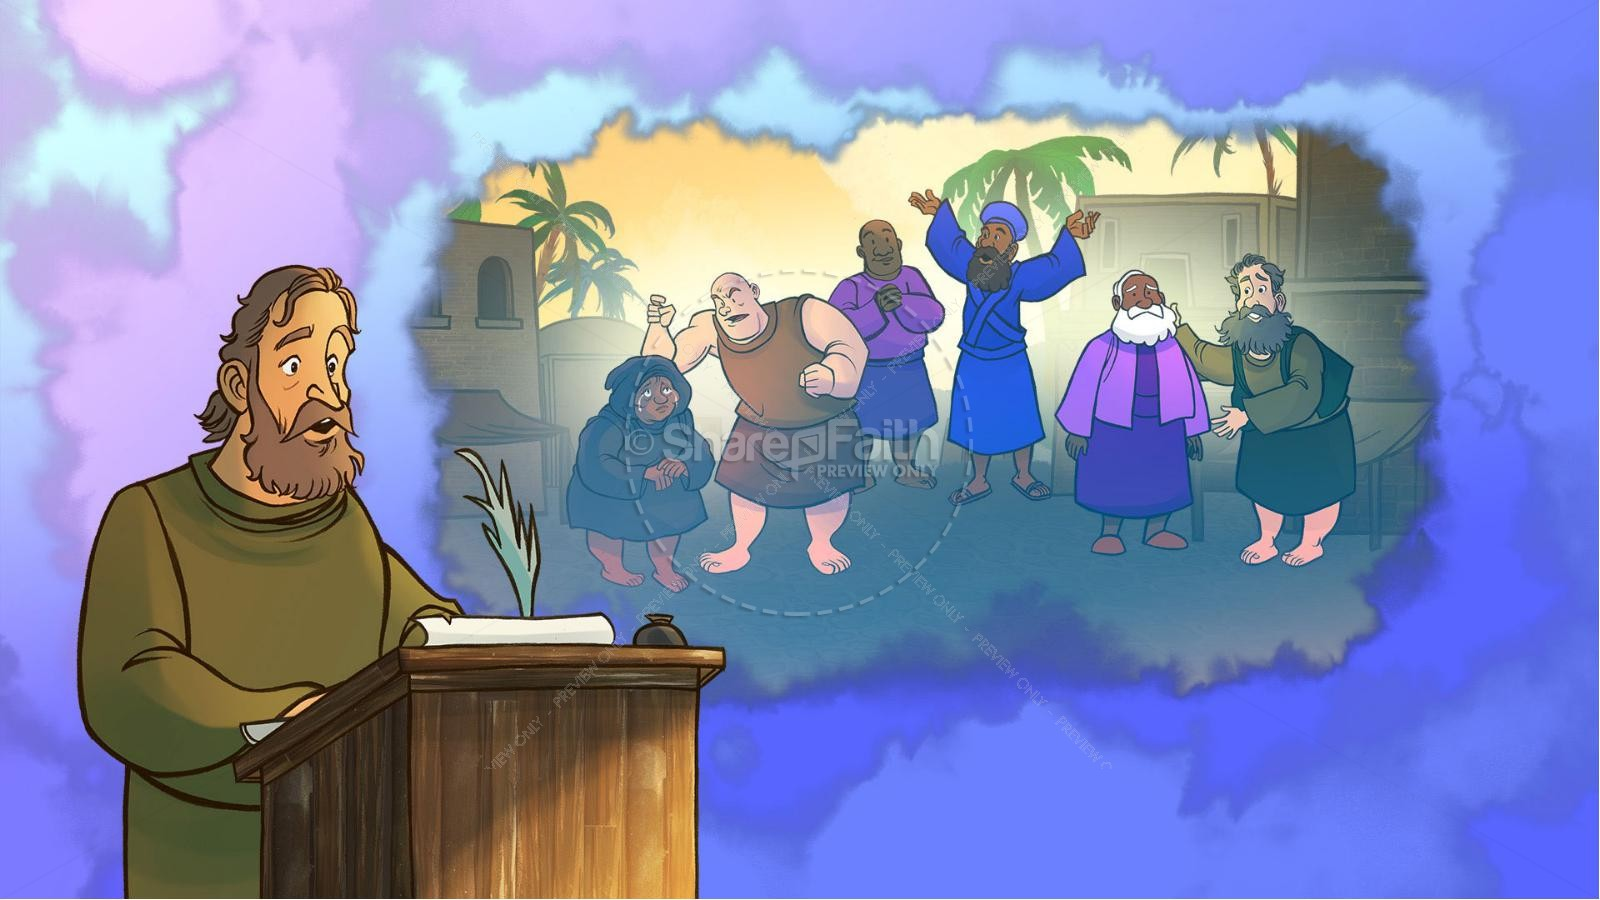 James 3 The Power of Words Kids Bible Story | slide 2